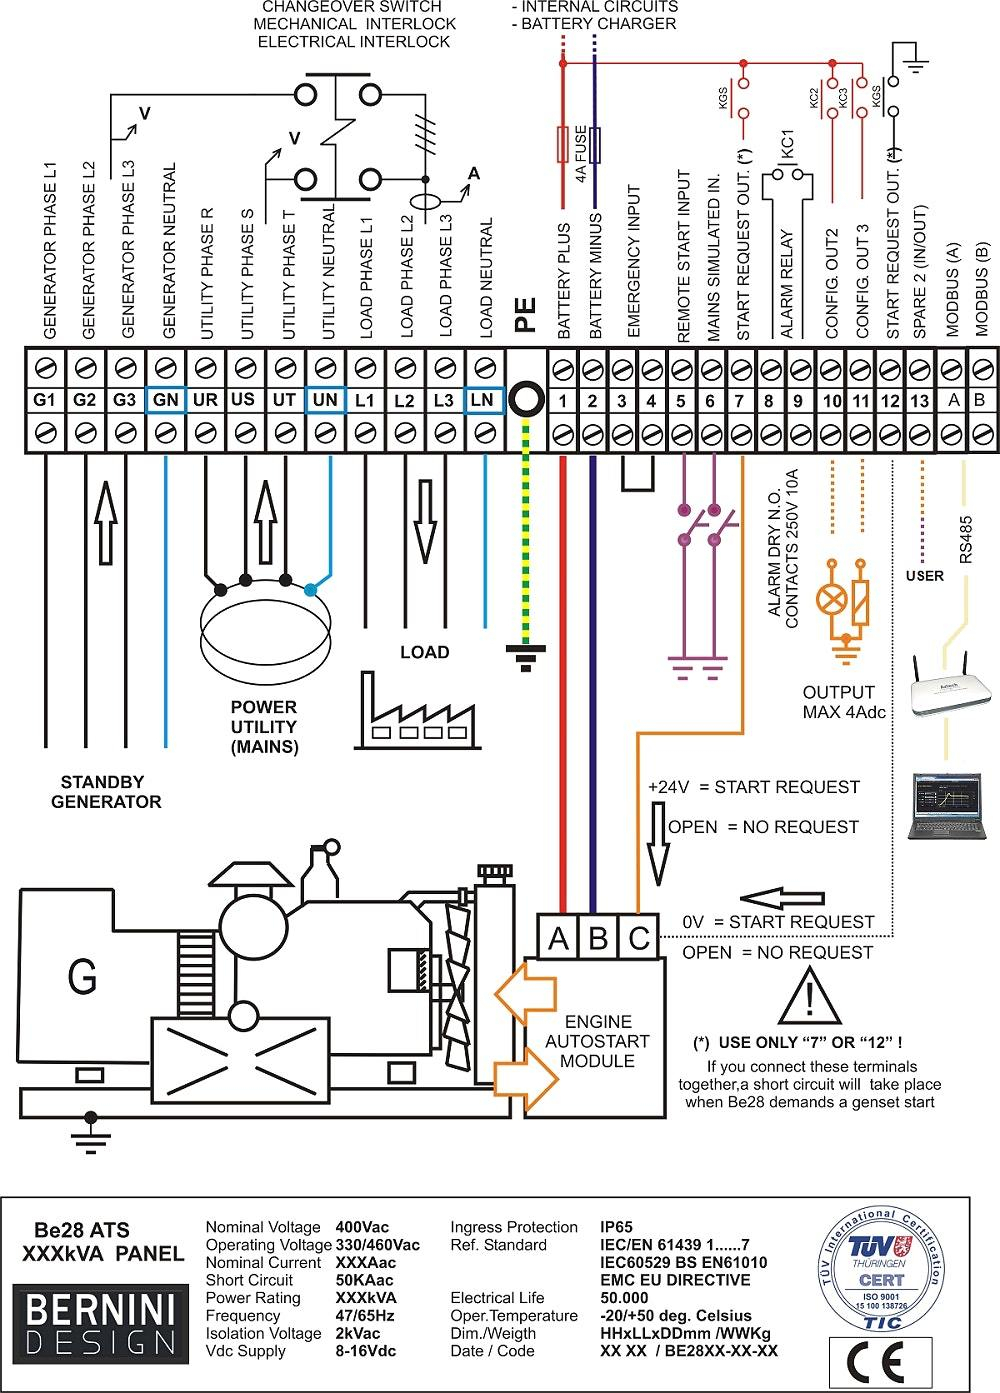 generac wiring diagram Collection-an Transfer Switch Wiring Diagram Collection Generac Automatic Transfer Switch Wiring Diagram At To 11 18-s